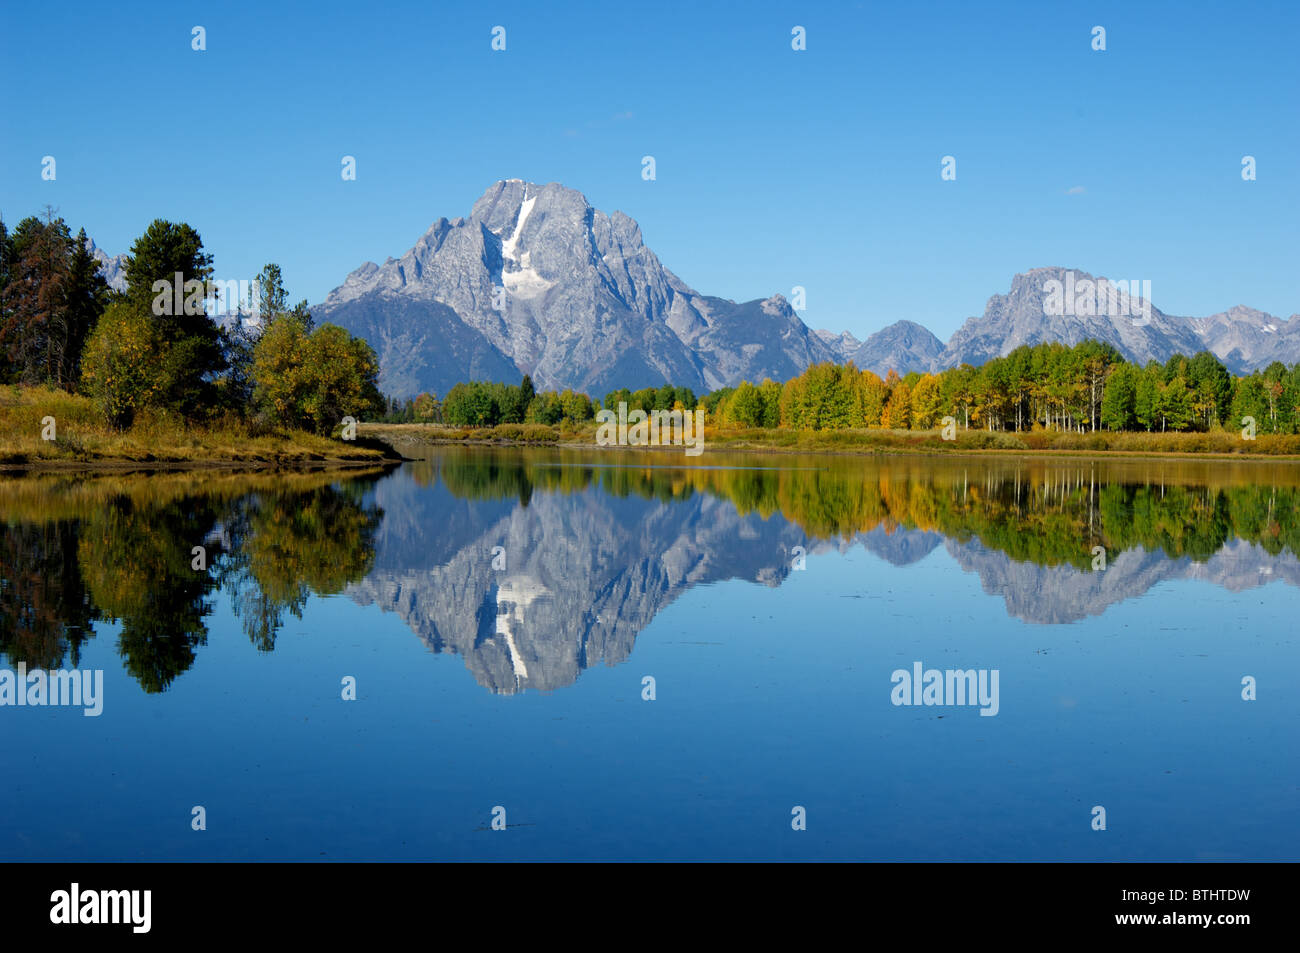 Oxbow Lake, Grand Teton National Park, with Mt. Moran in the background - perfect reflection. - Stock Image